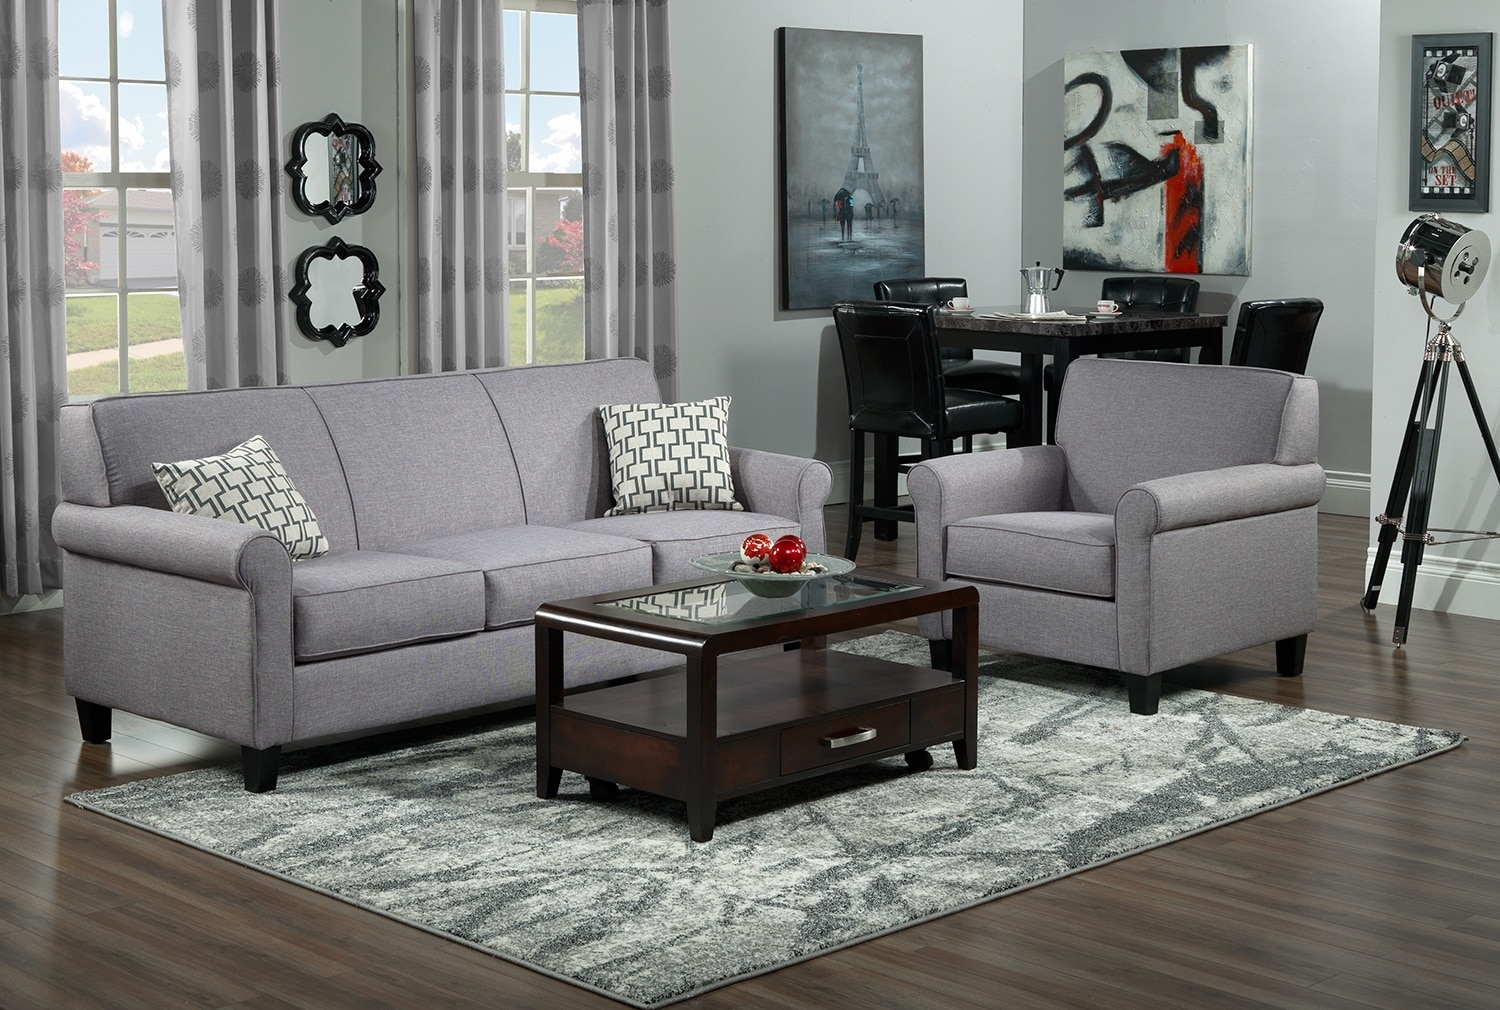 Ariel Sofa and Chair Set - Silver-Grey